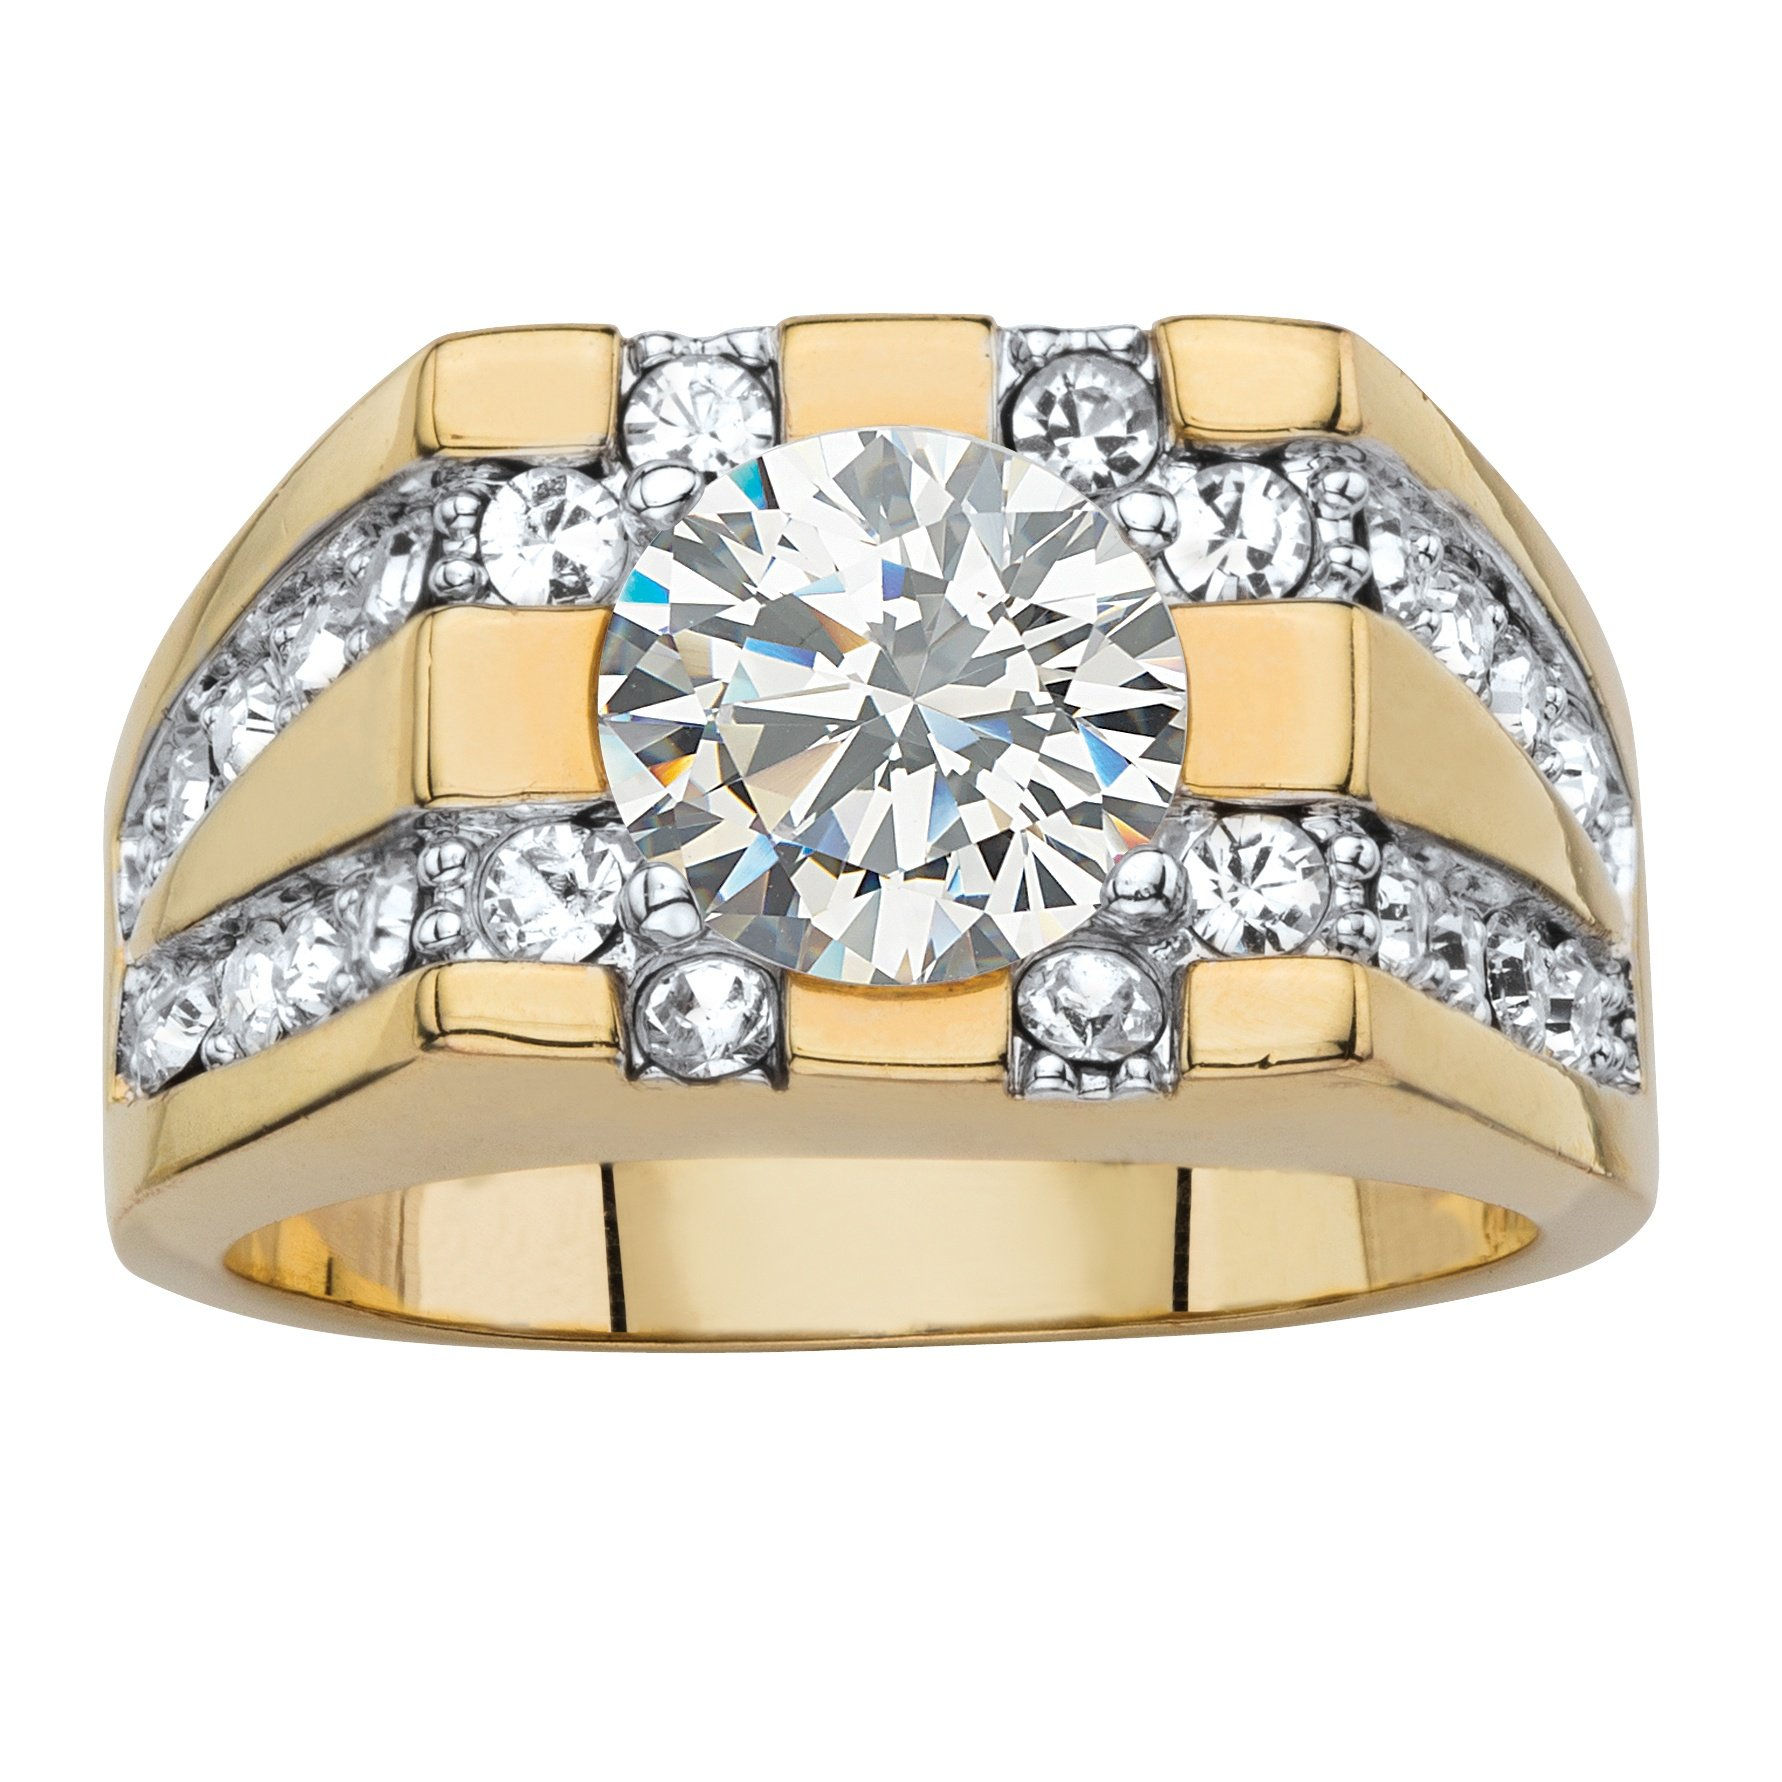 Palm Beach Jewelry Men's Round White Cubic Zirconia 14k Gold-Plated Grid Ring Size 13 by Palm Beach Jewelry